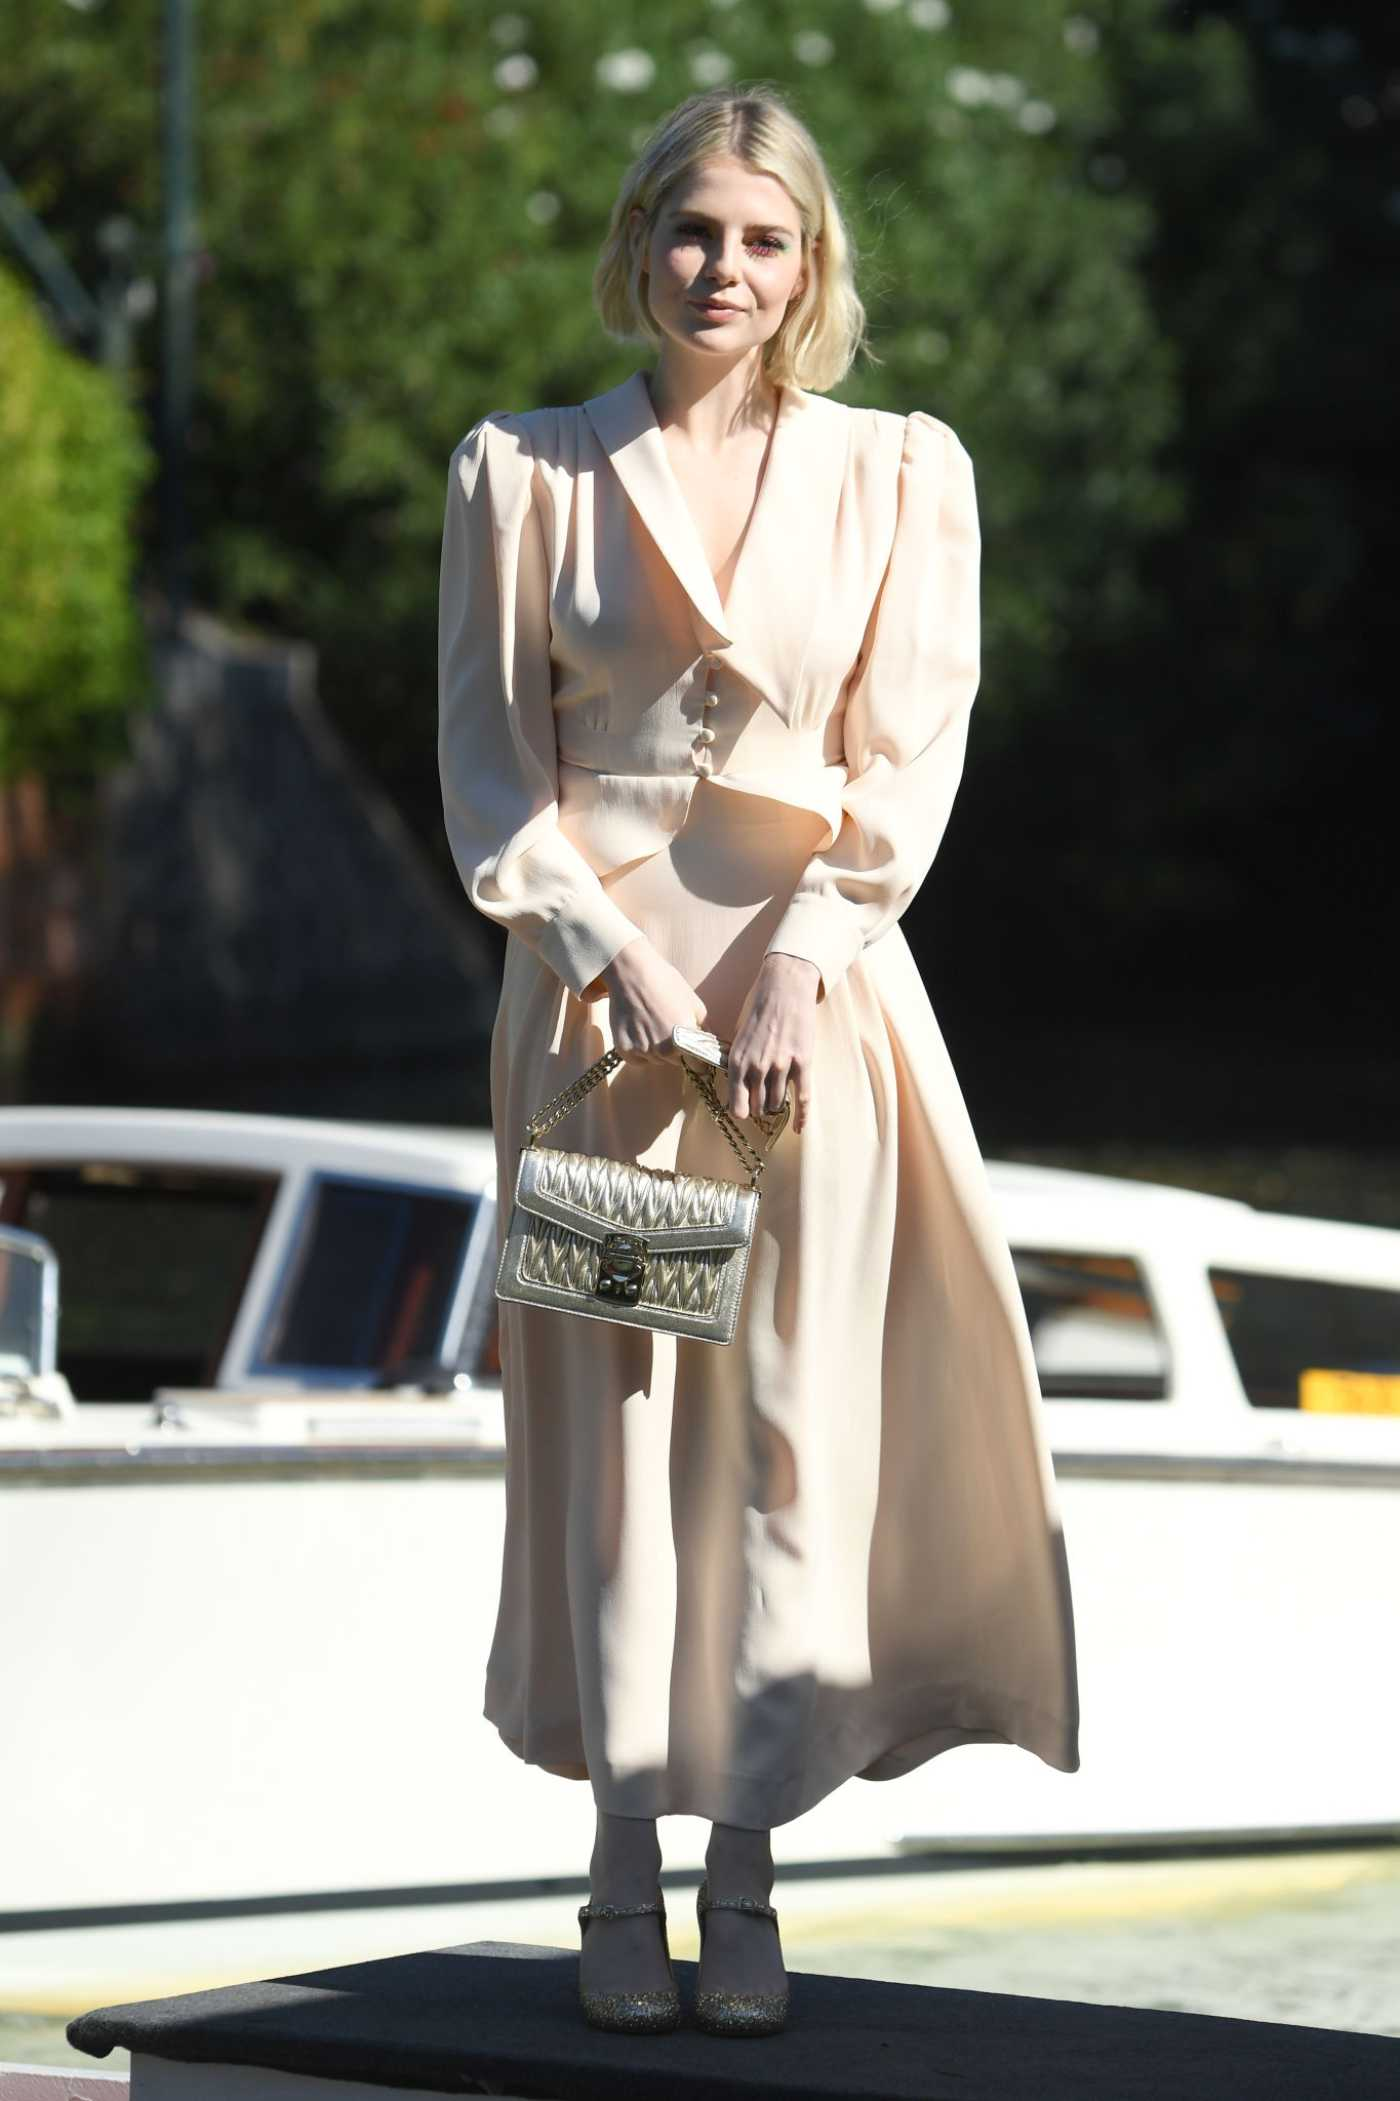 Lucy Boynton in a Beige Suit Arrives at the 76th Venice Film Festival in Venice 09/03/2019